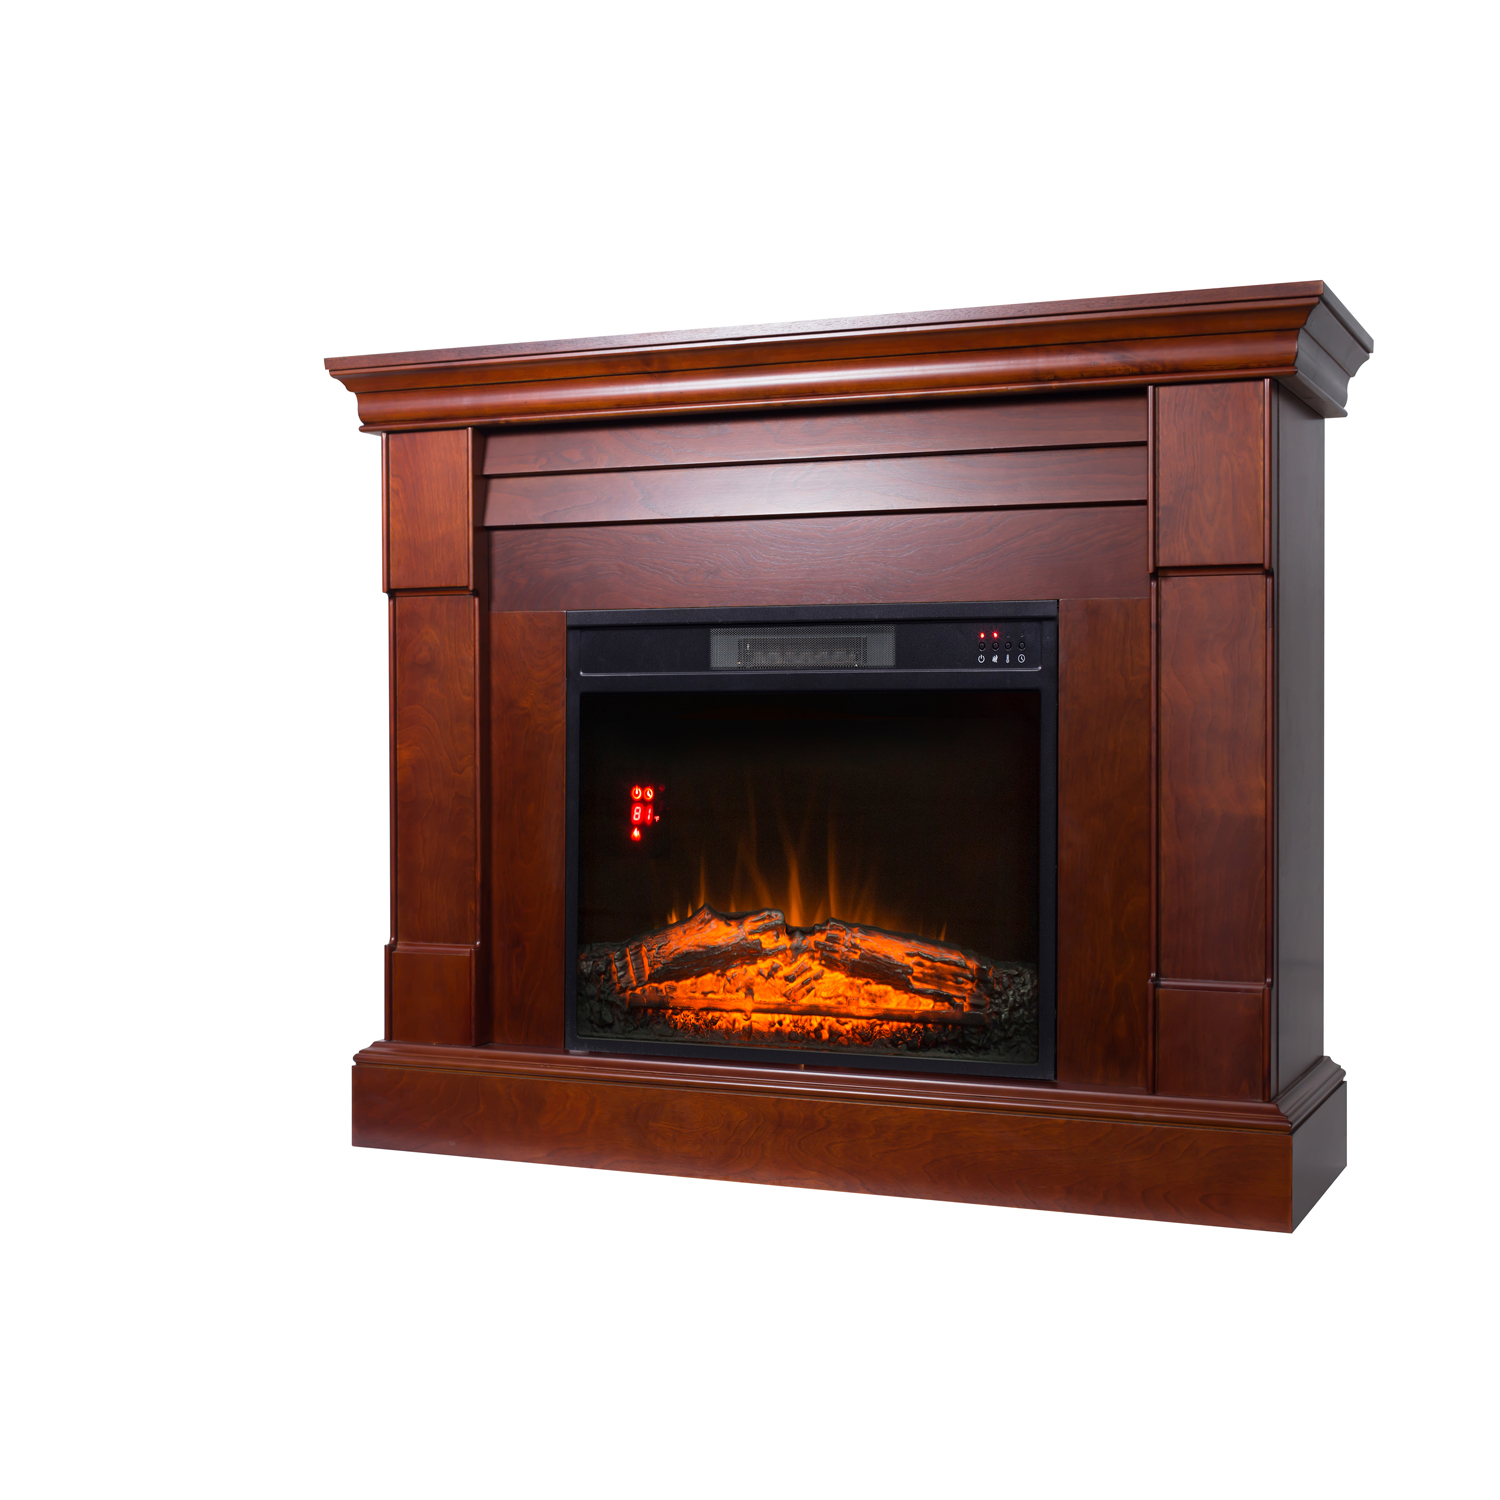 """Click here to buy Decor-Flame Electric Space Heater Fireplace with 47"""" Mantle by SHANGHAI WINDO TRADING CO LTD."""